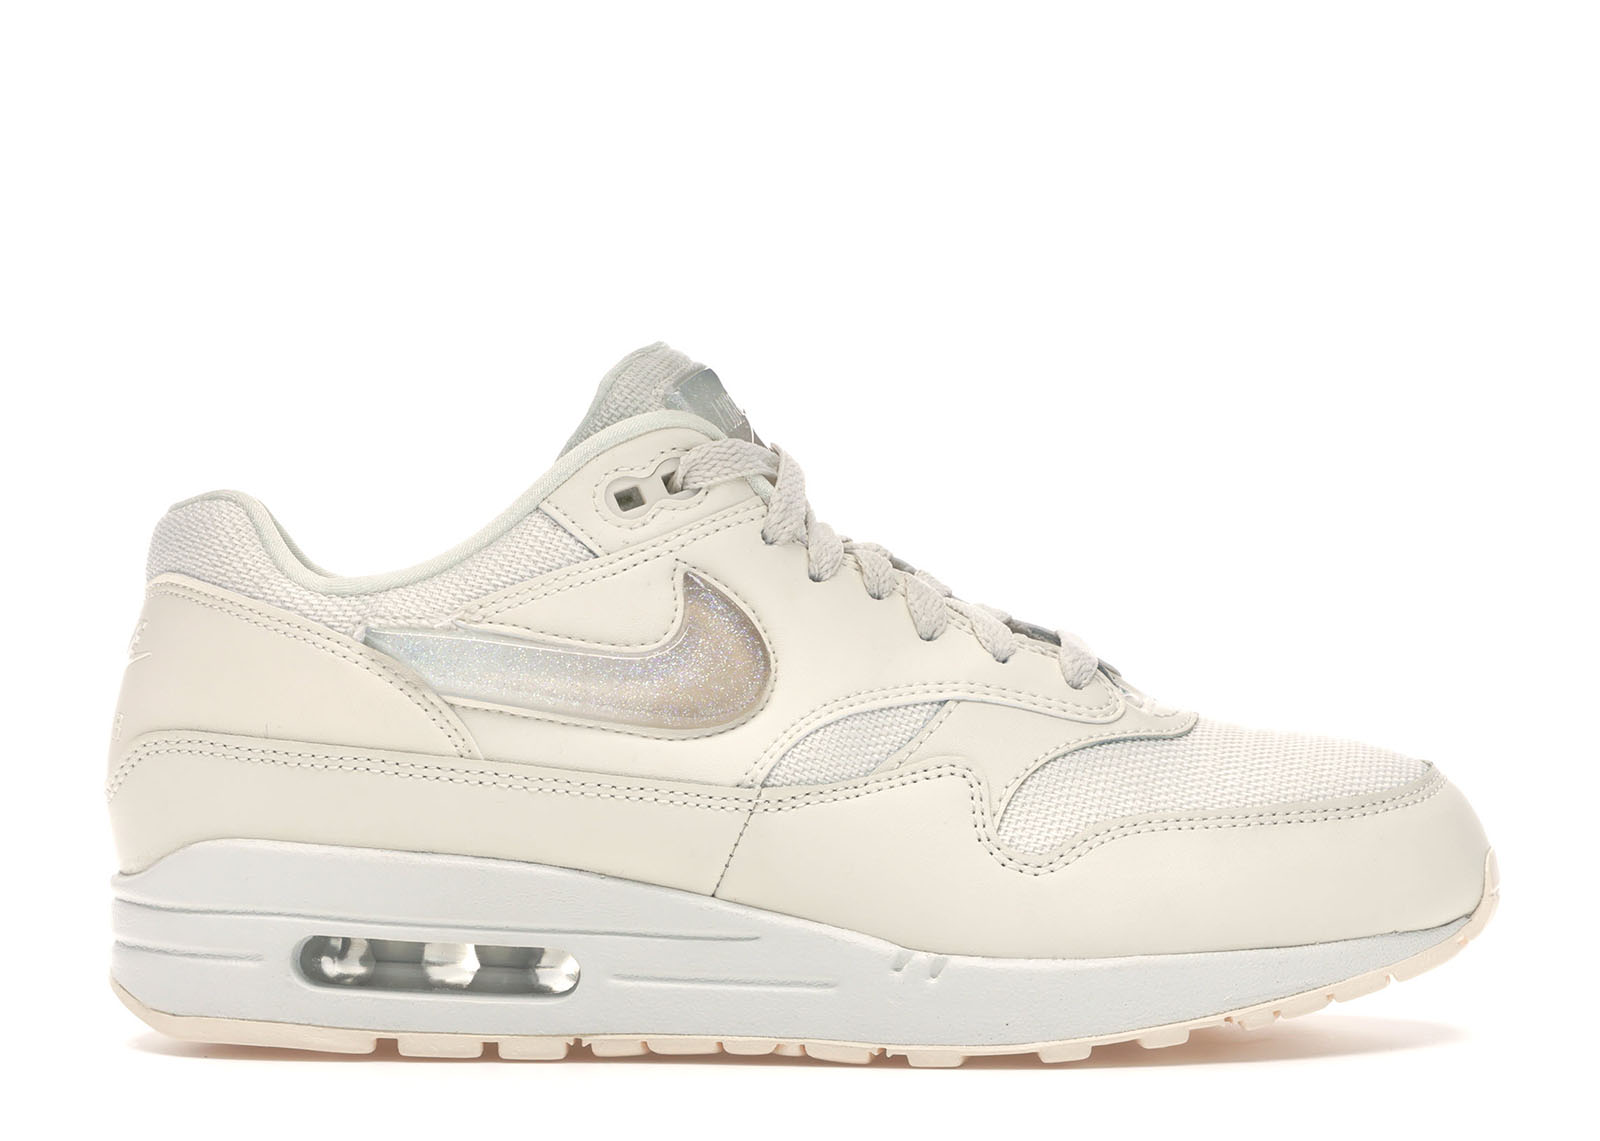 Nike Air Max 1 Jelly Puff Pale Ivory (W